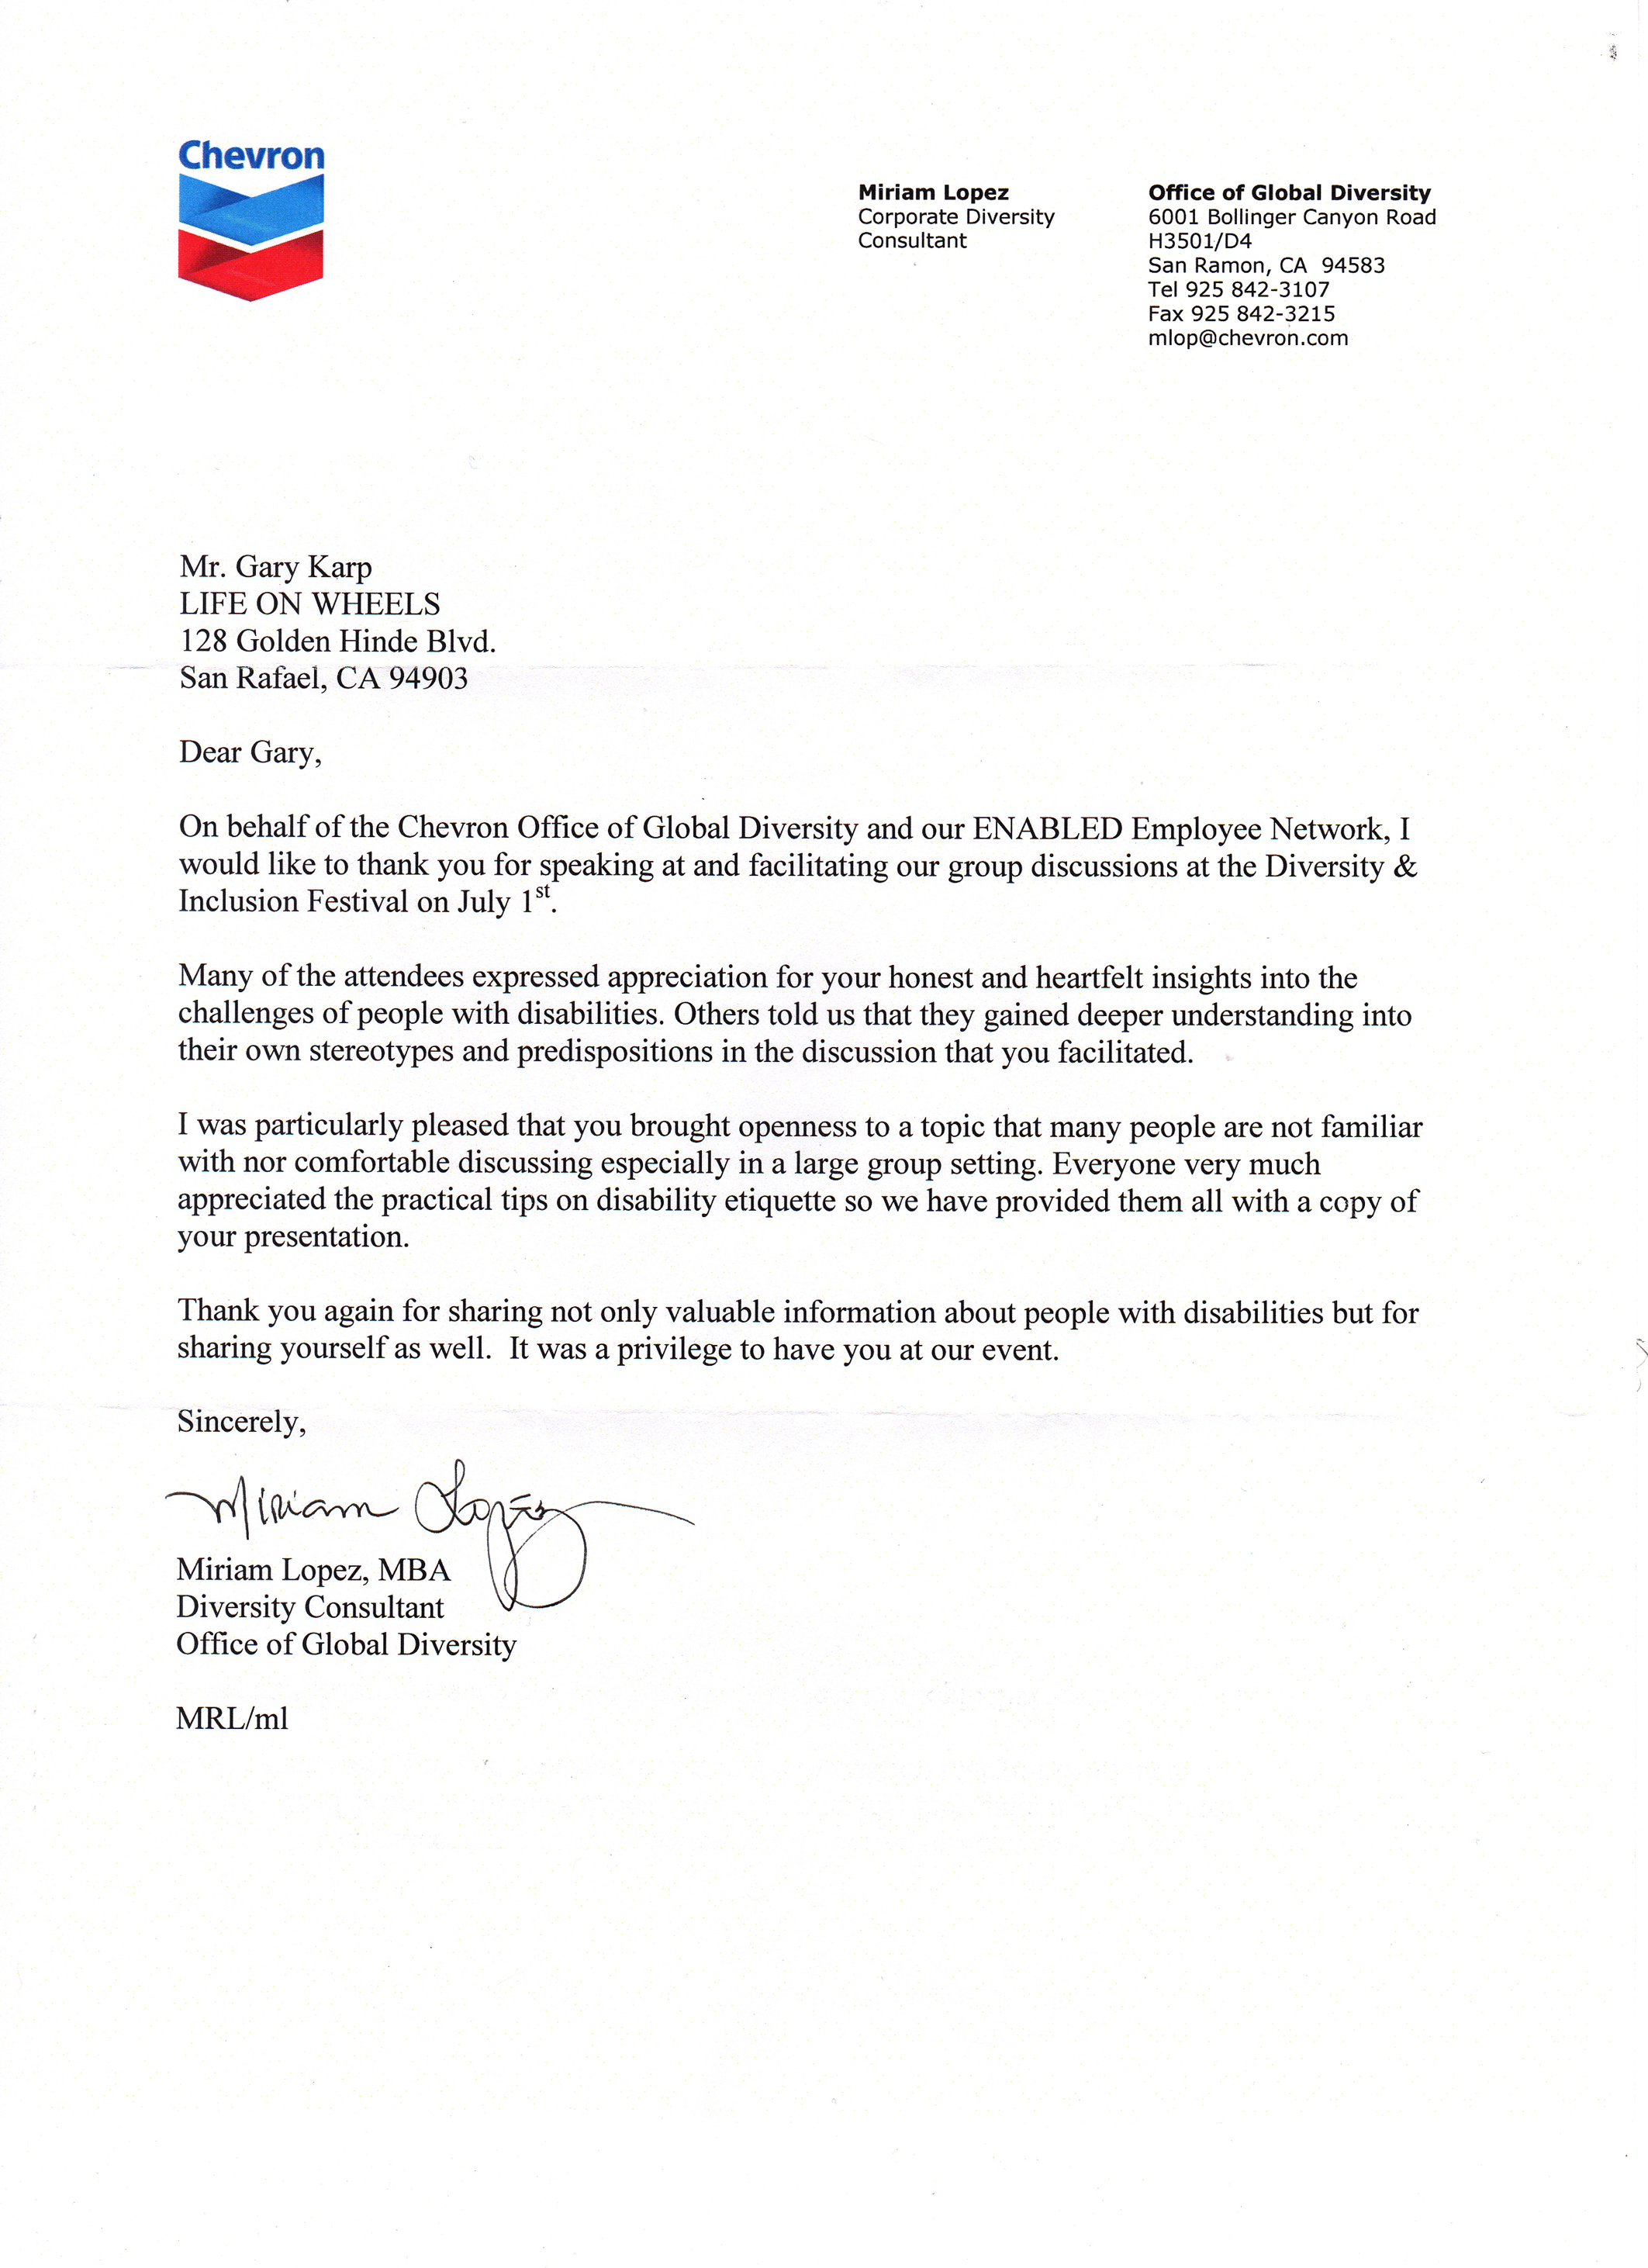 Image of Chevron Corporation testimonial letter. Click for text version.